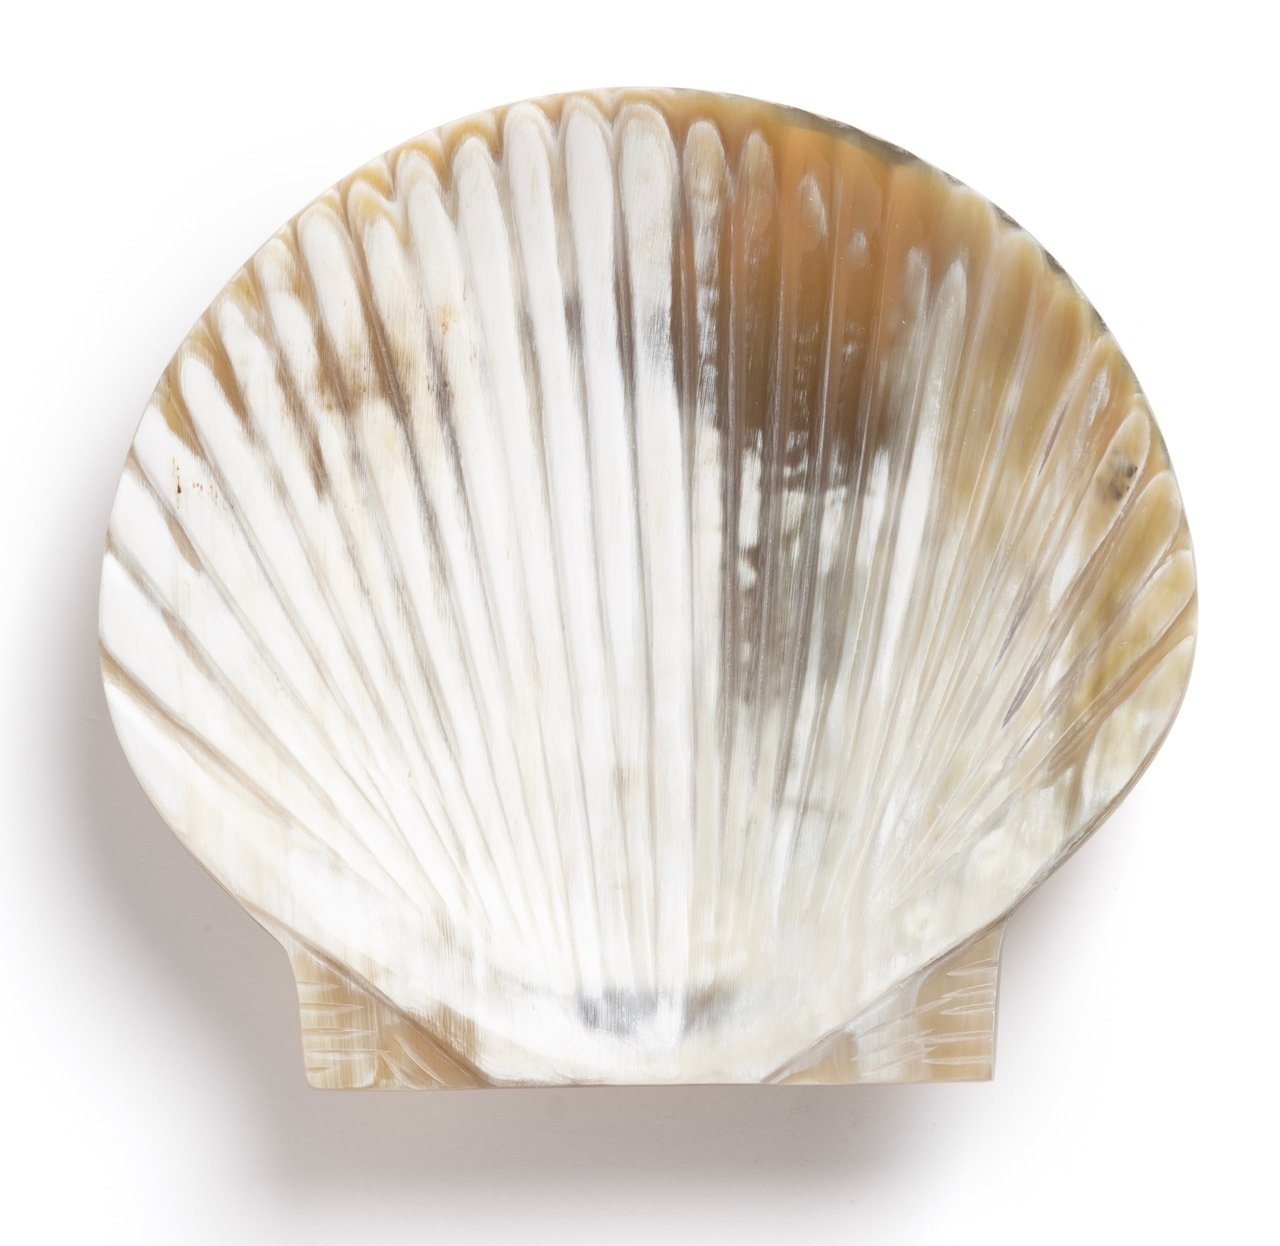 Siren Song Scallop Horn Dish